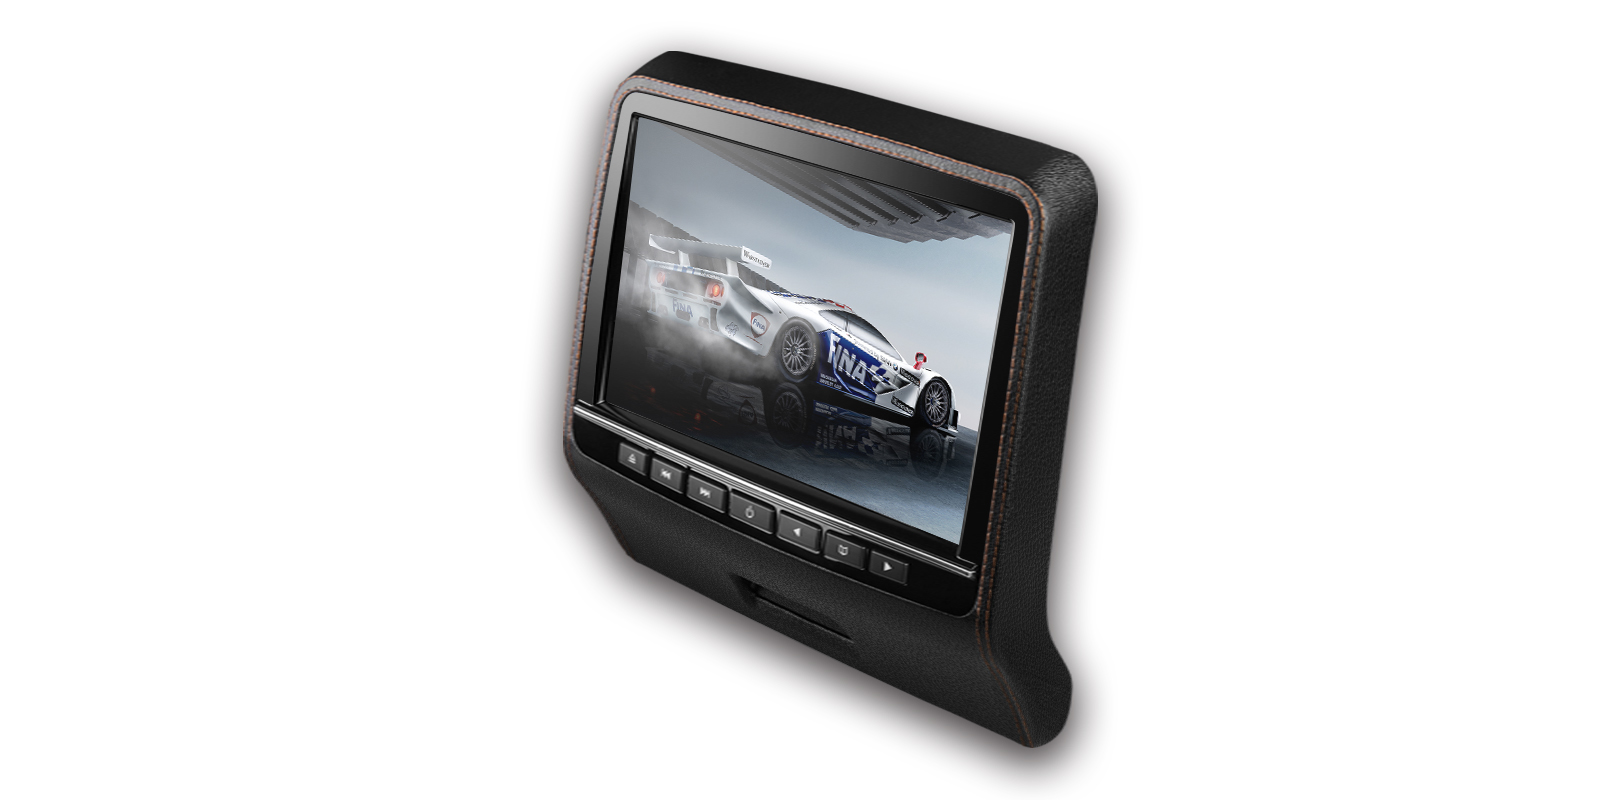 9 Hd Digital Tft Screen Leather Styled Car Headrest Dvd Player With Nissan Monitor Wiring Harness Prevnext